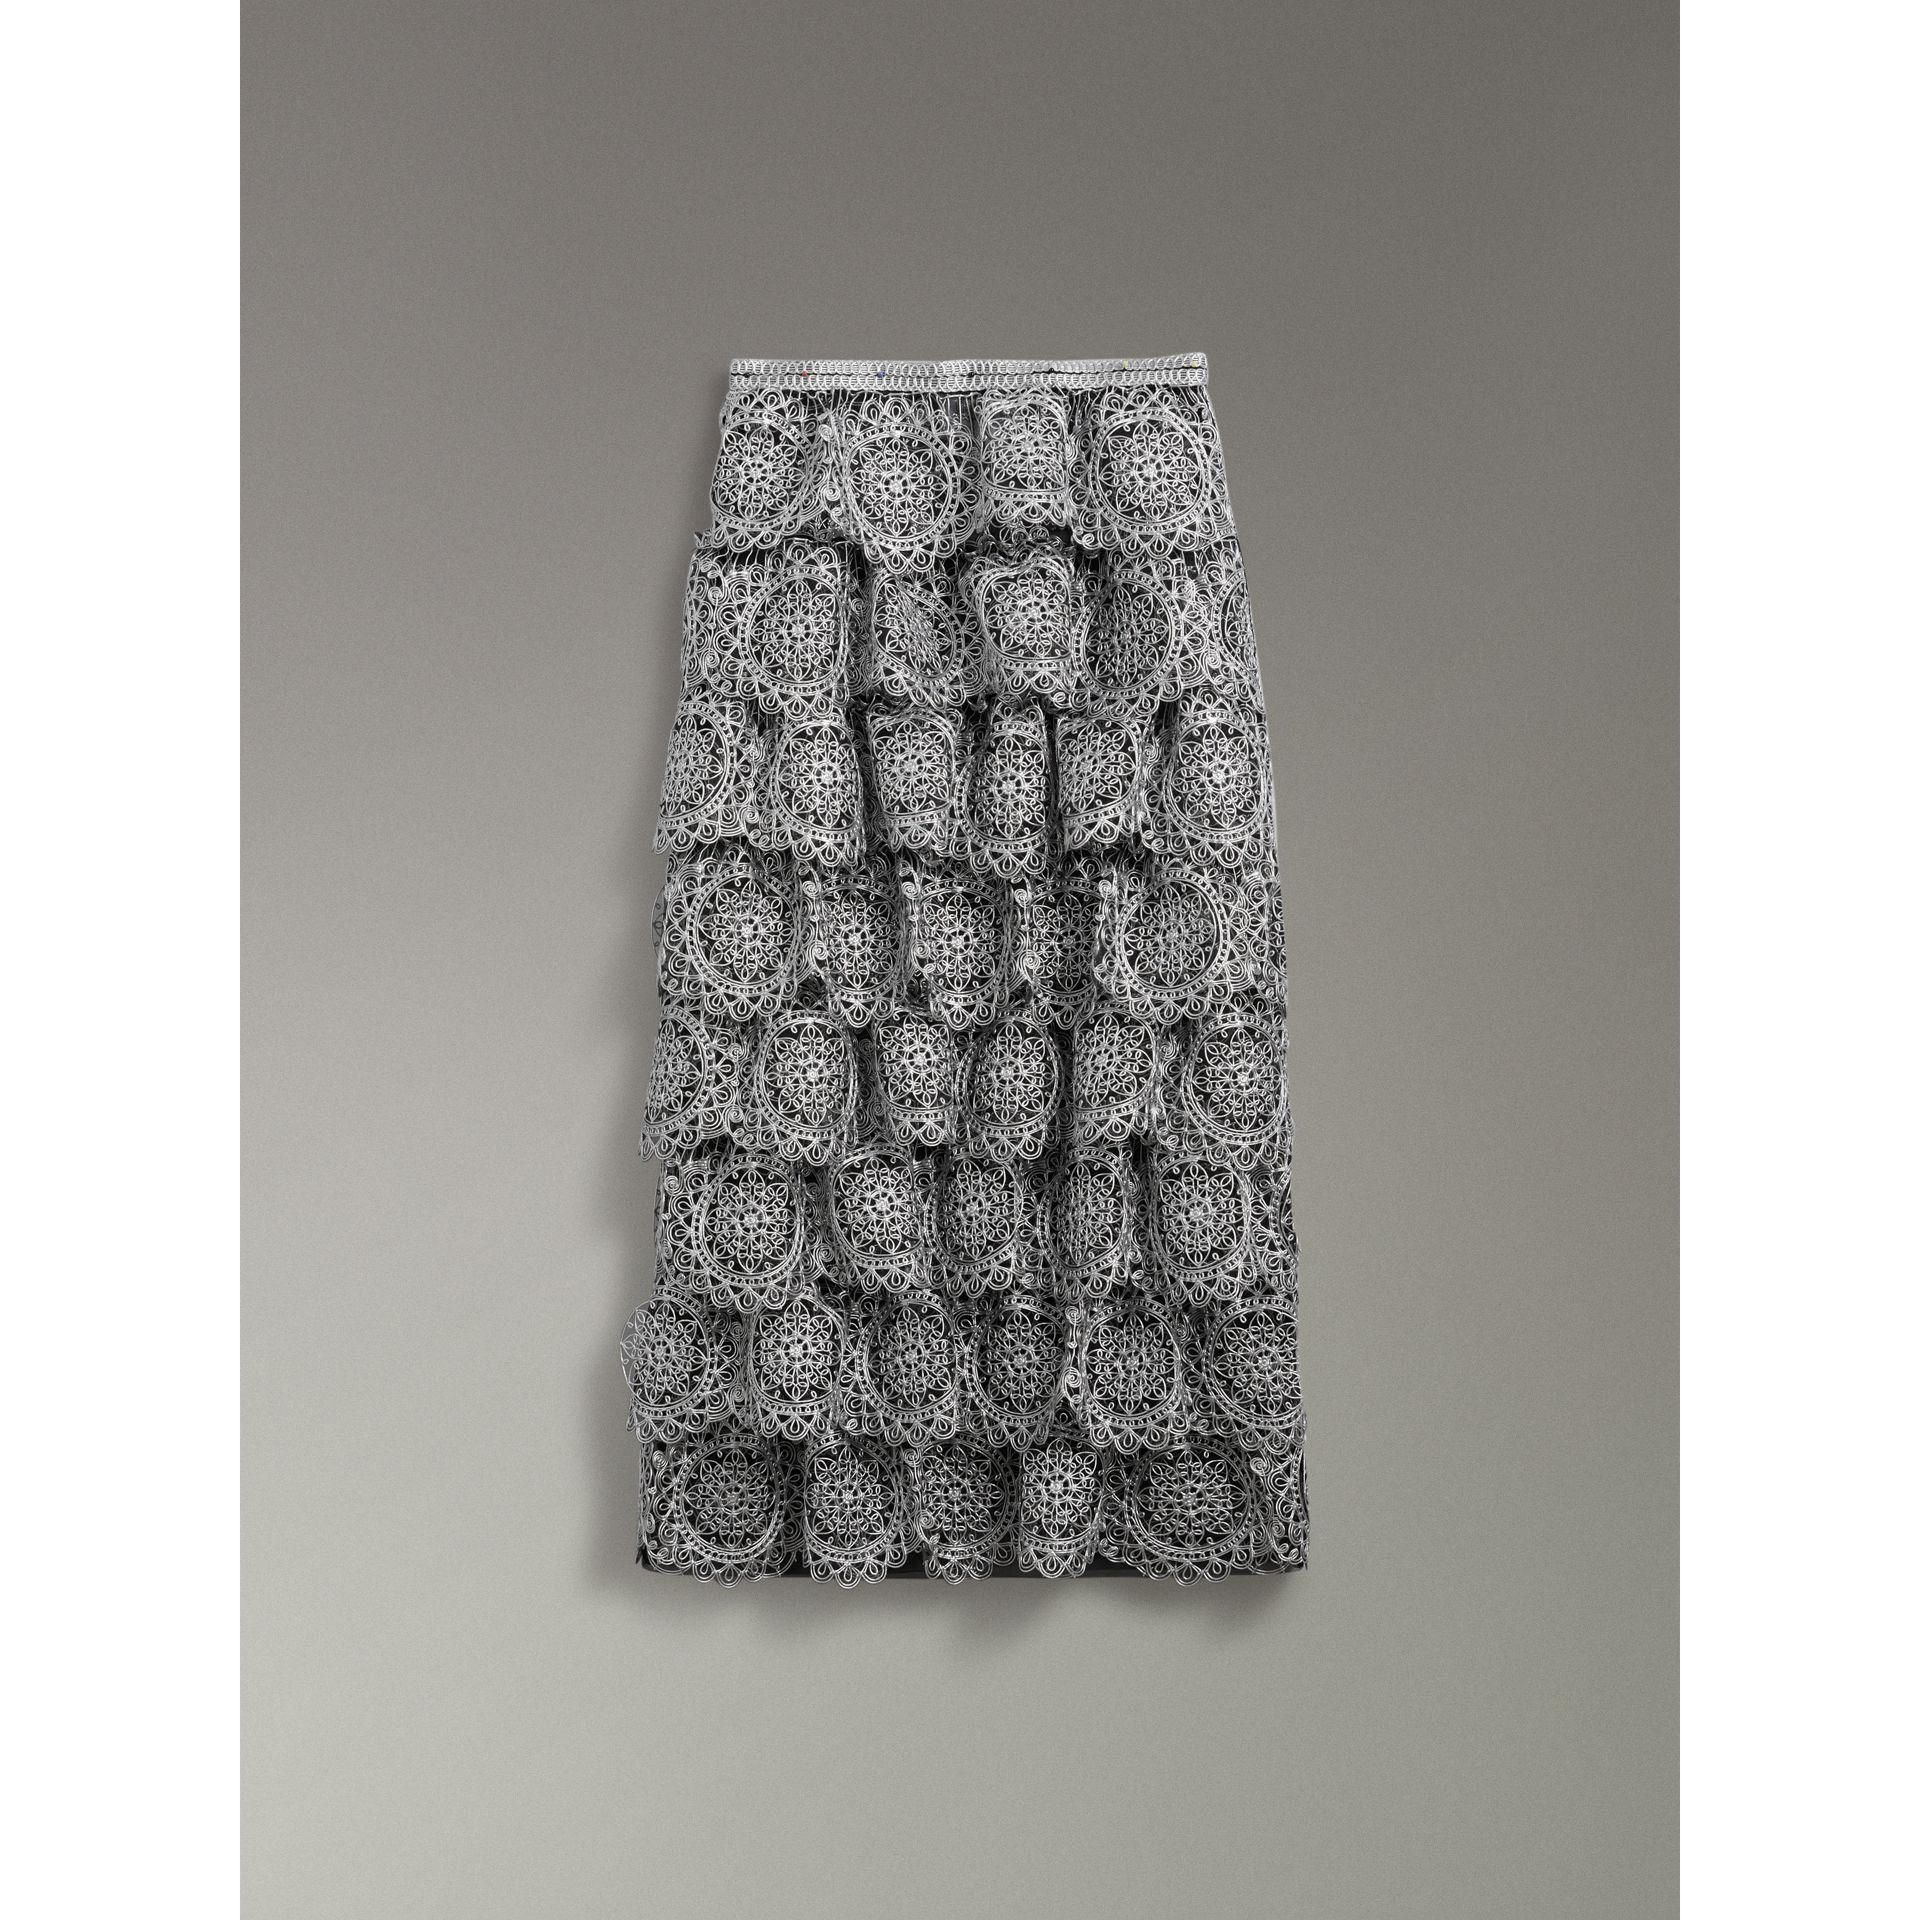 Tiered Silicone Lace Skirt in Silver - Women | Burberry Canada - gallery image 3